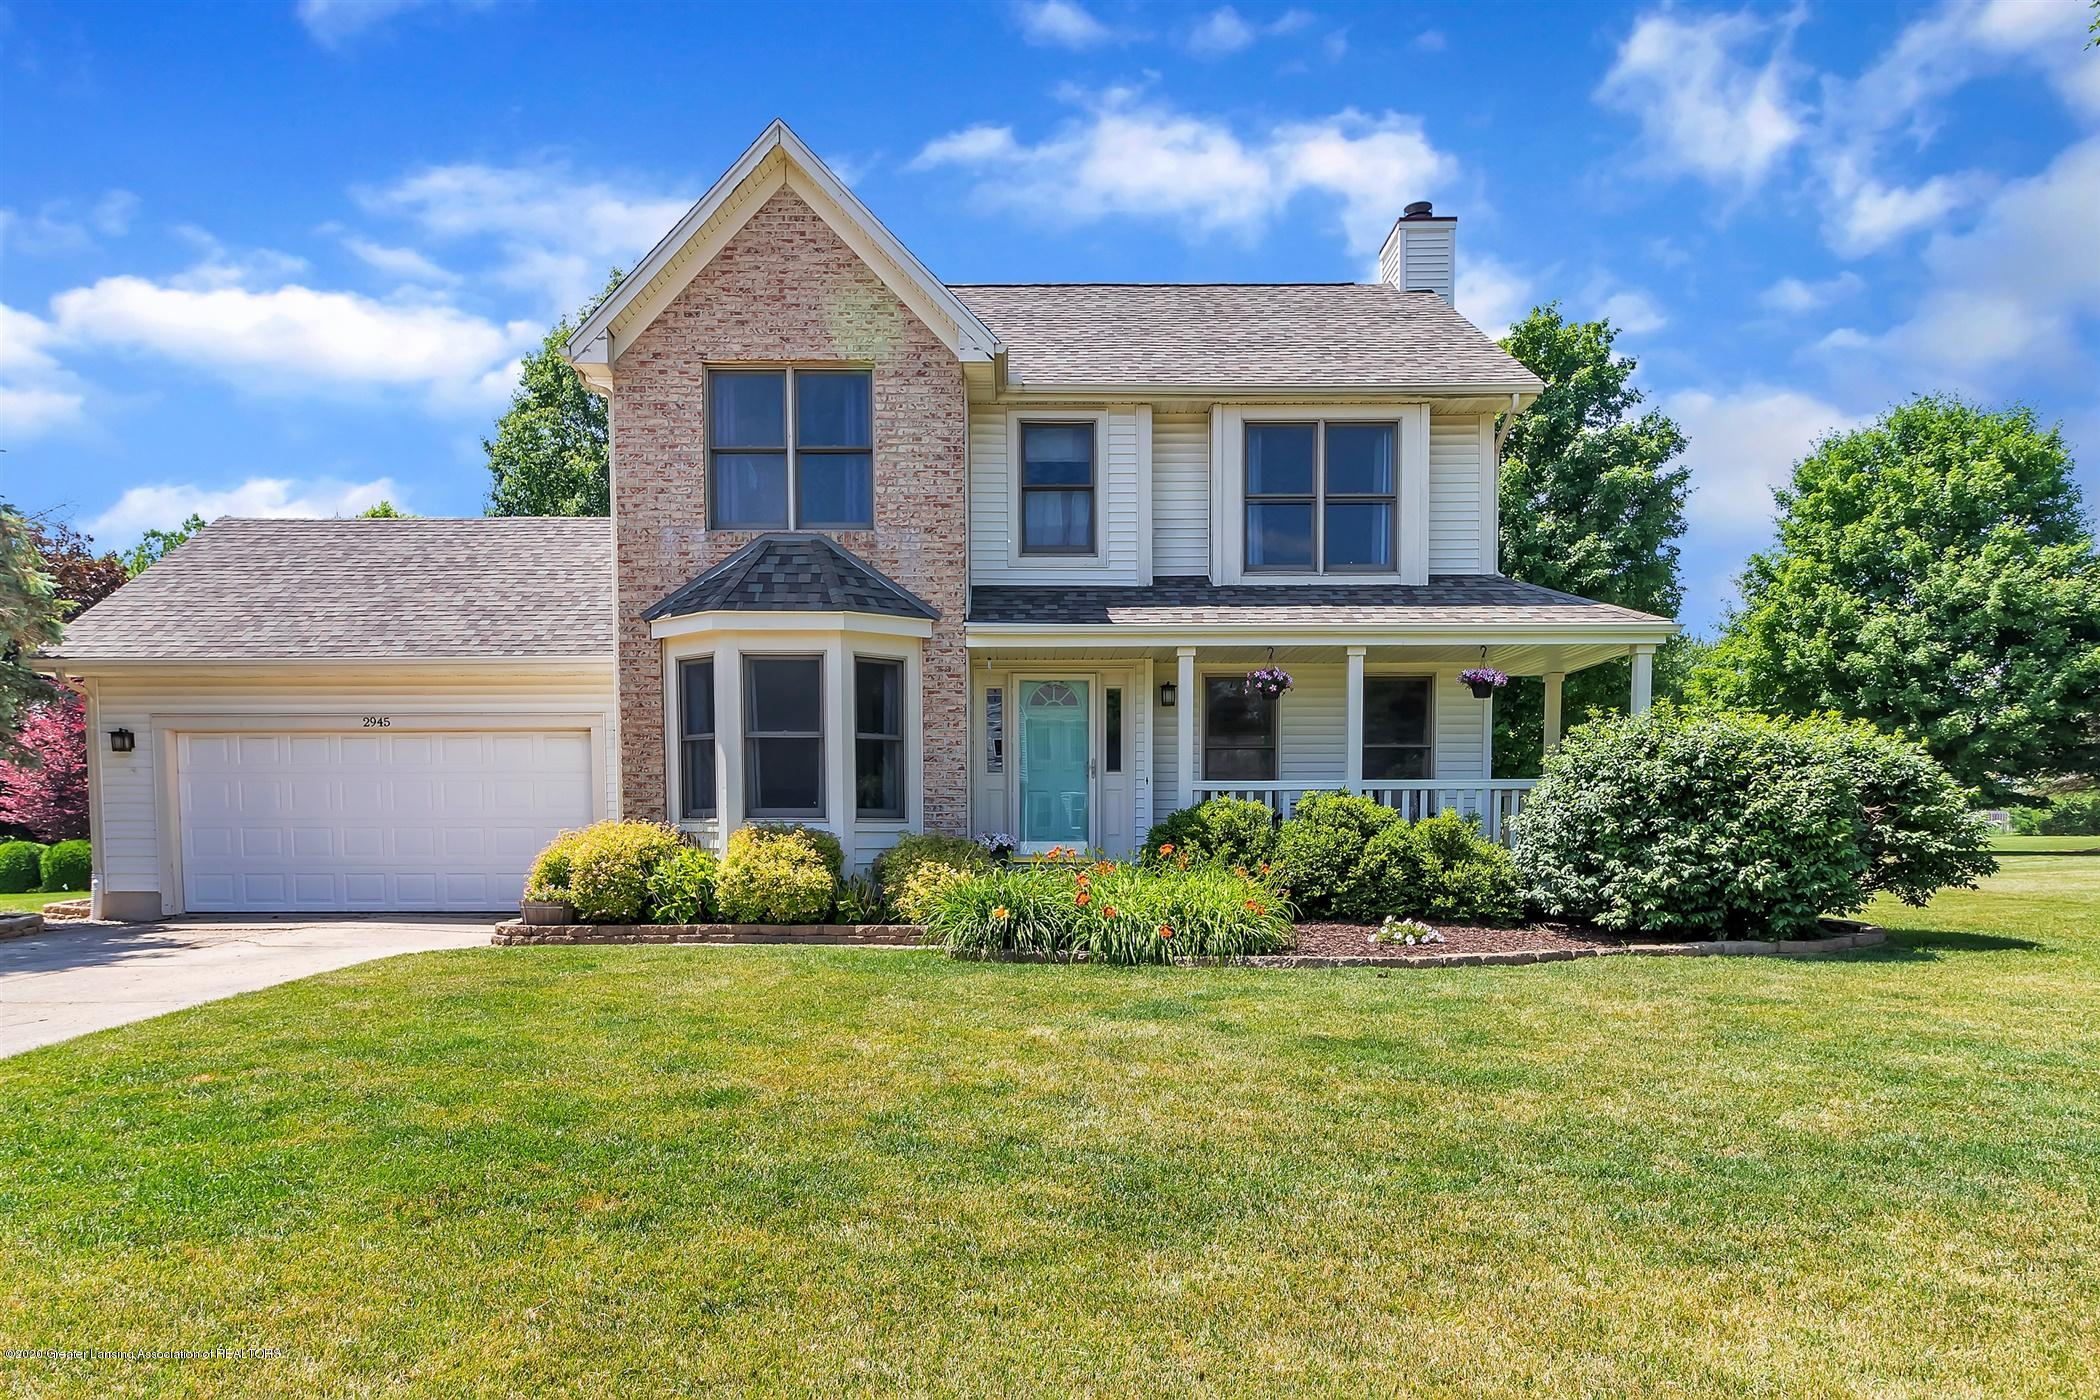 2945 Whistlewood Way - 03-2945Whistlewood-WindowStill-Real - 3